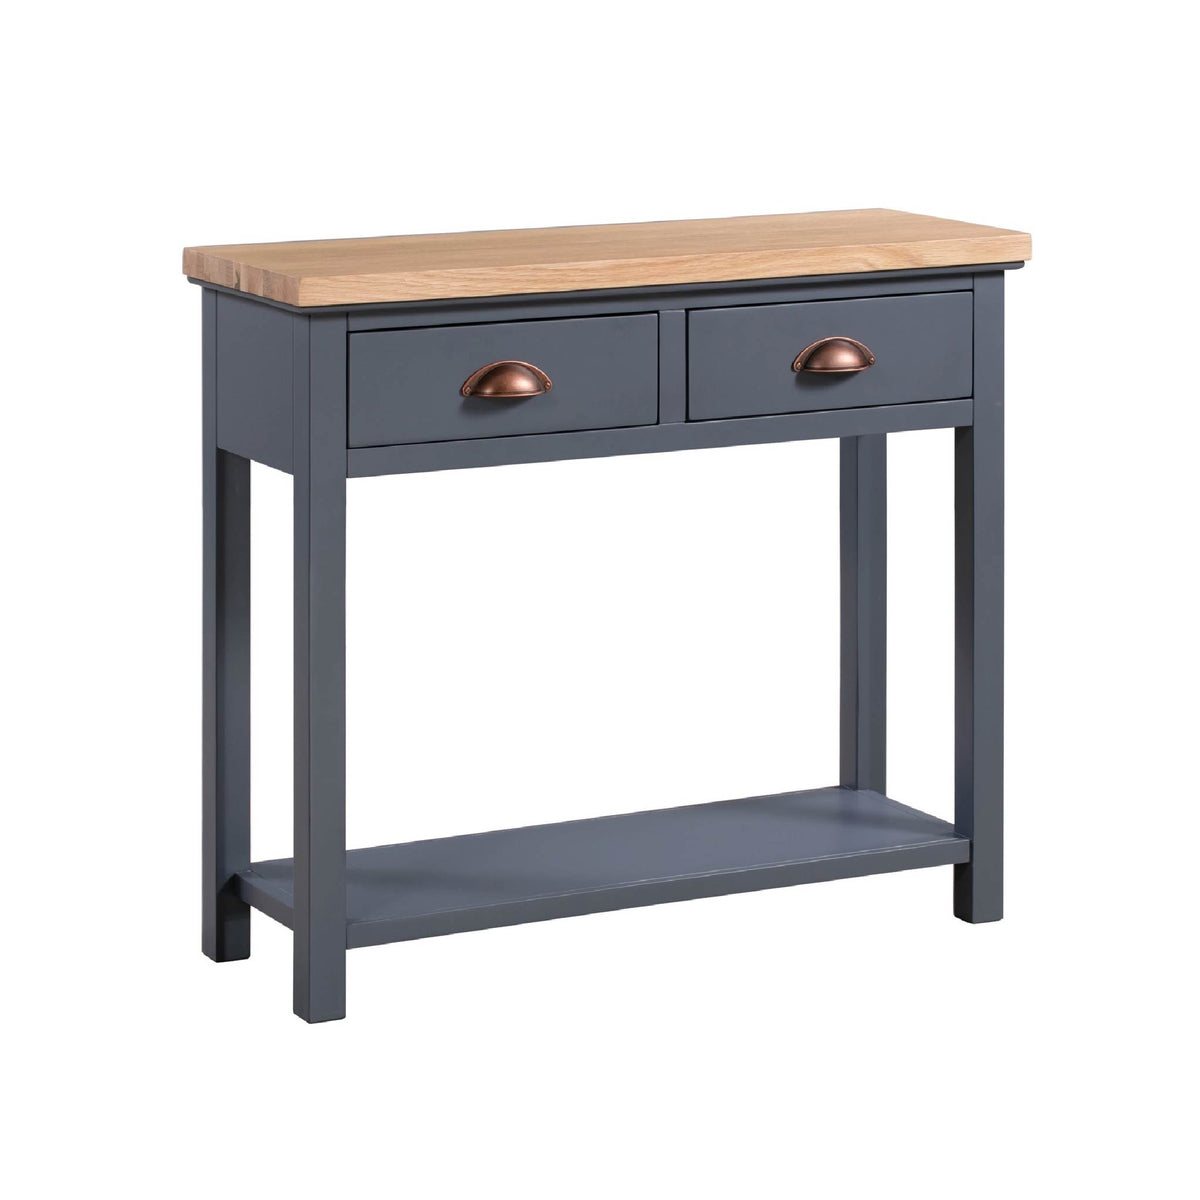 Richmond Oak Two Drawer Console Table by Roseland Furniture